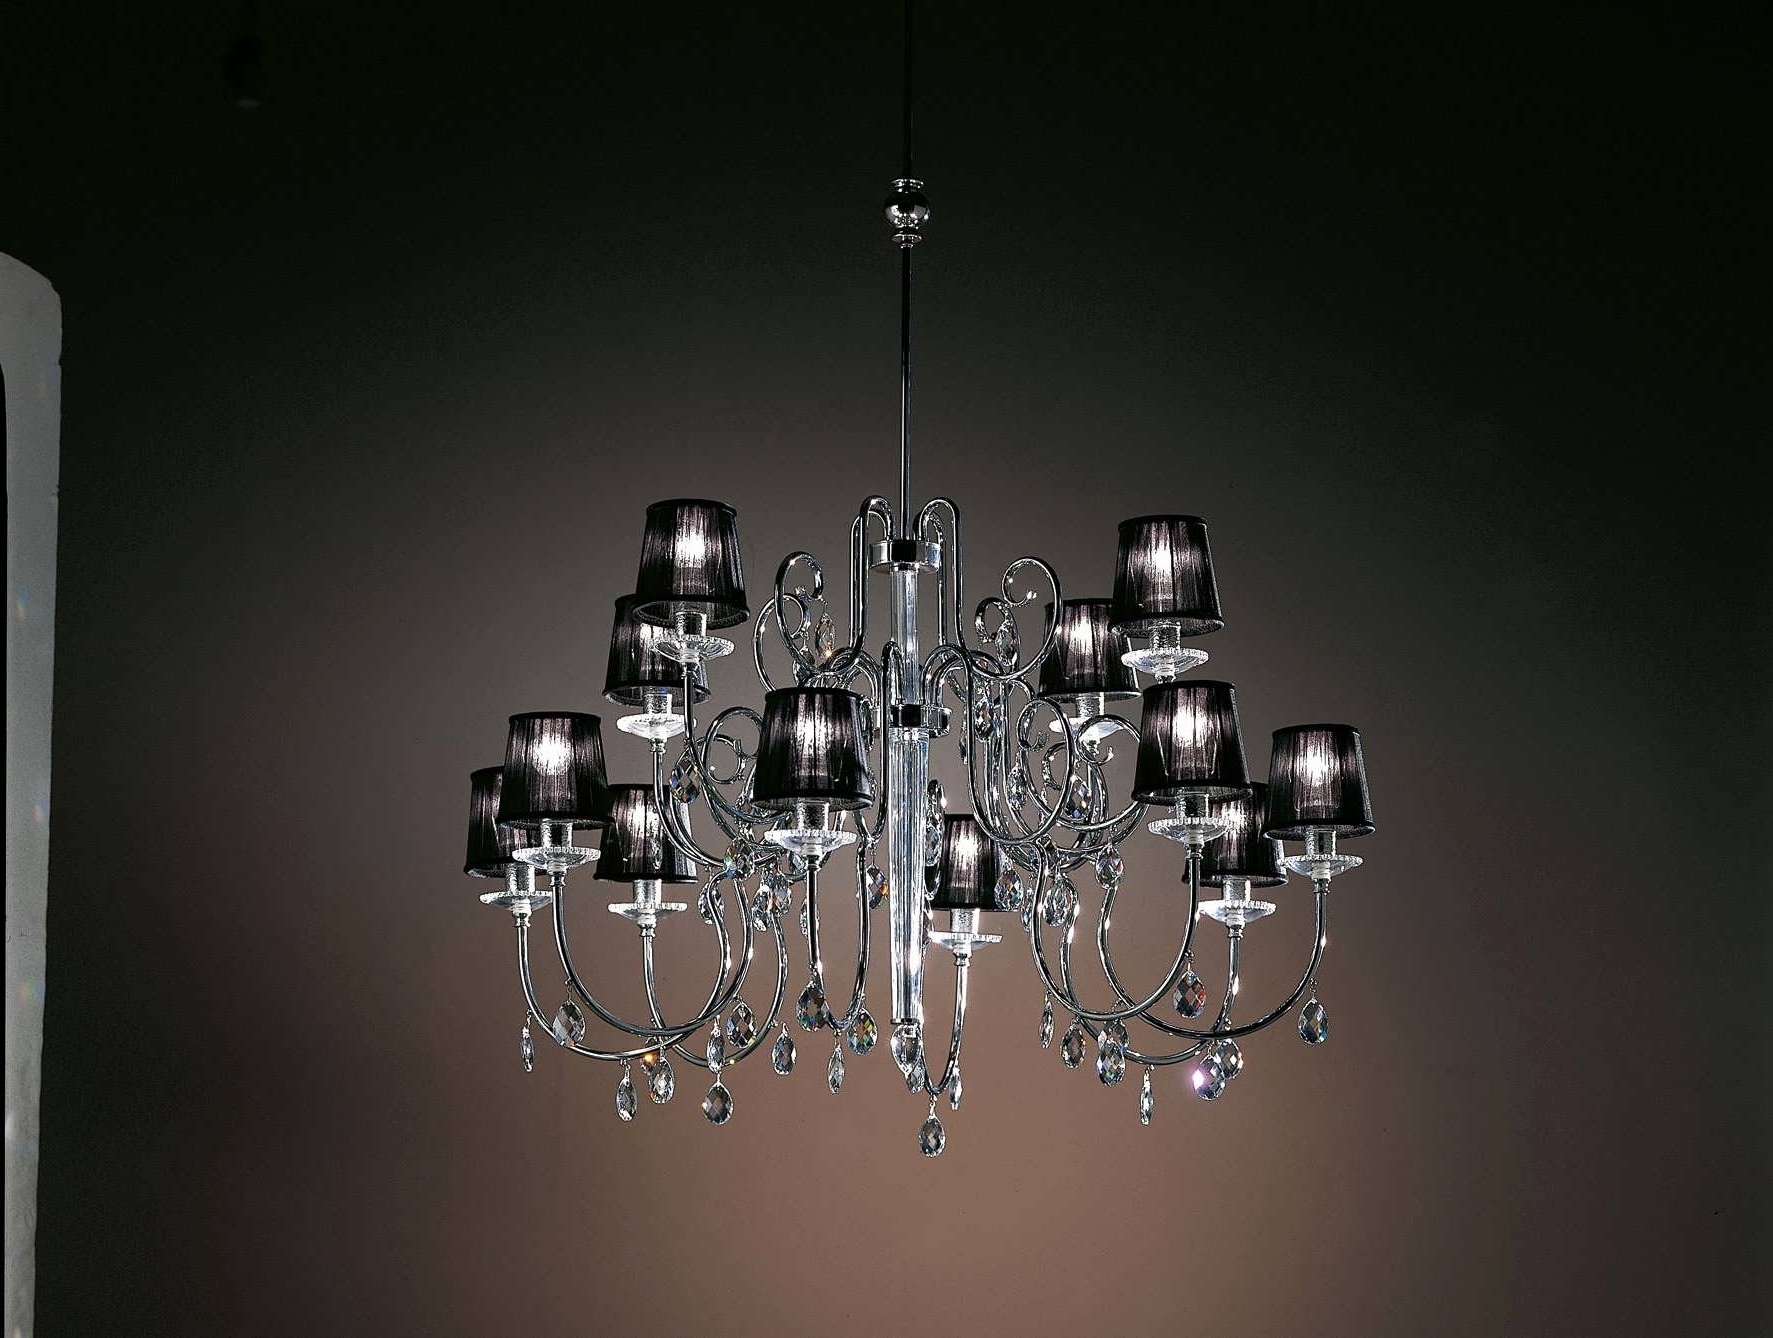 Large Modern Chandeliers In Recent Light : Modern Chandelier Lighting Small Black Keywordrelevance (View 16 of 20)